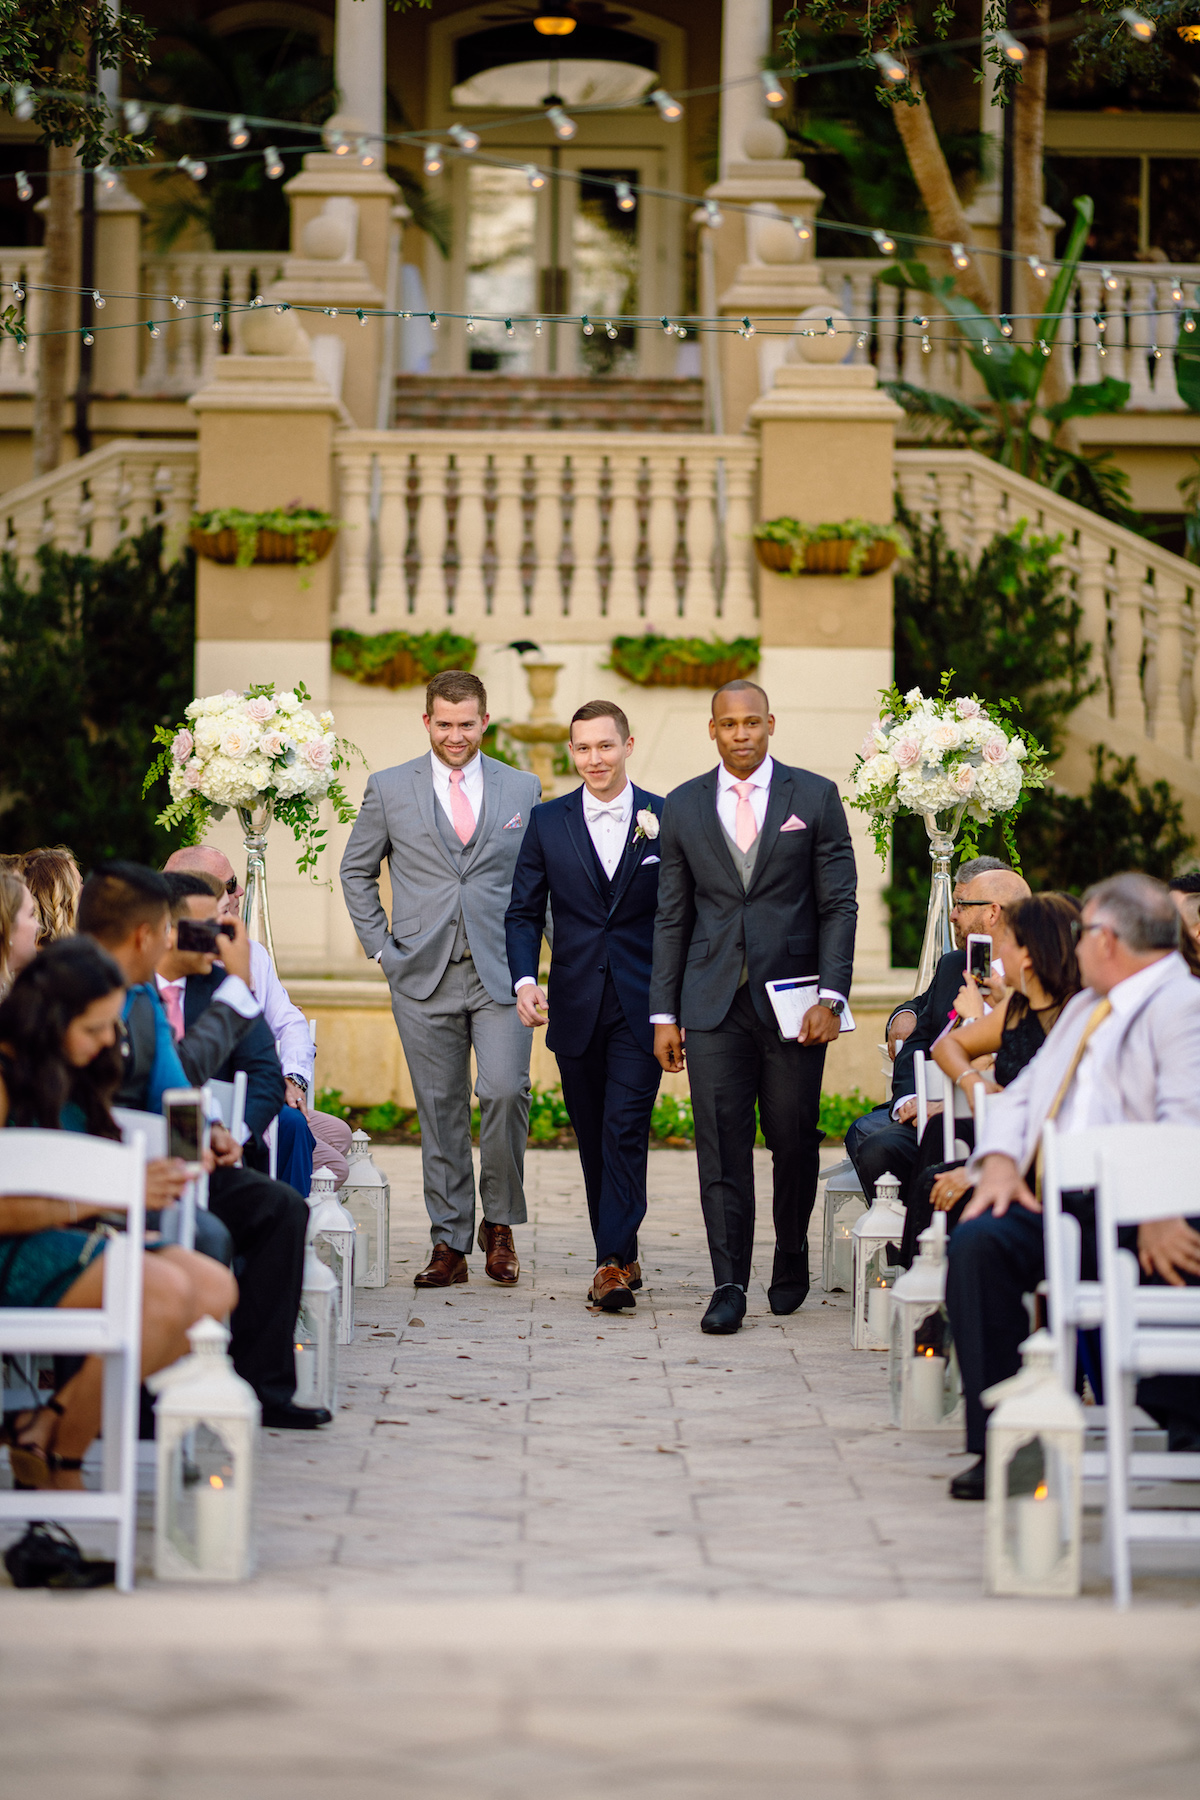 Wedding Ceremony Photography Matt Steeves South Florida Naples.jpg